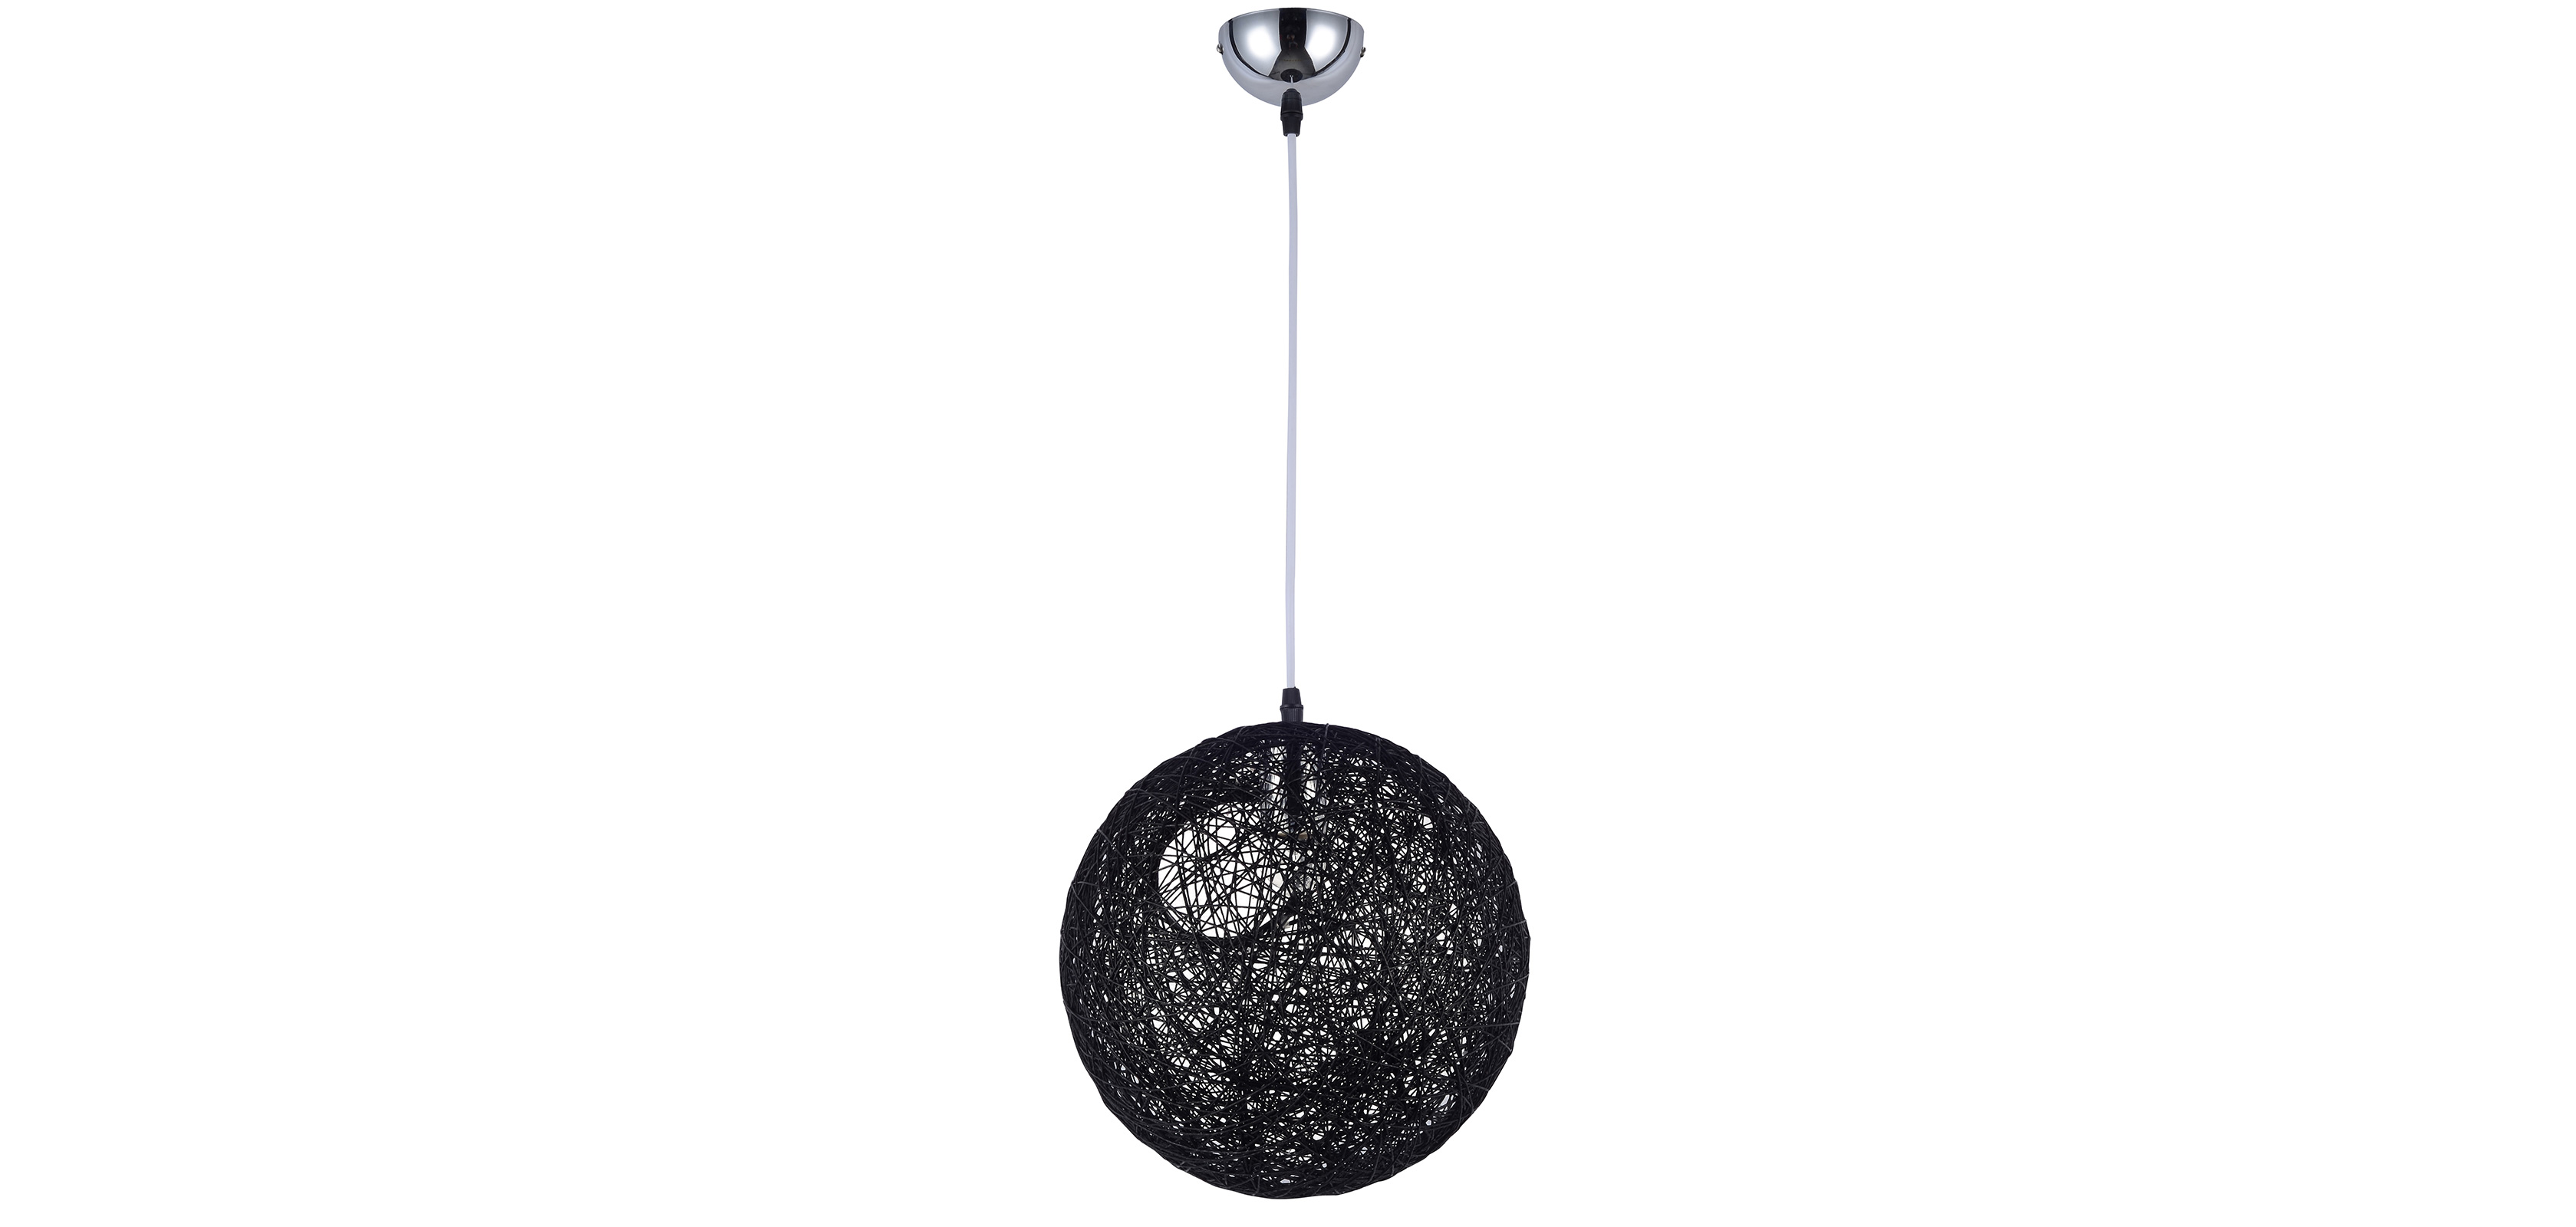 Lampe suspension boule al atoire 30 corde style pot bertjan pas cher - Lampe suspension boule ...